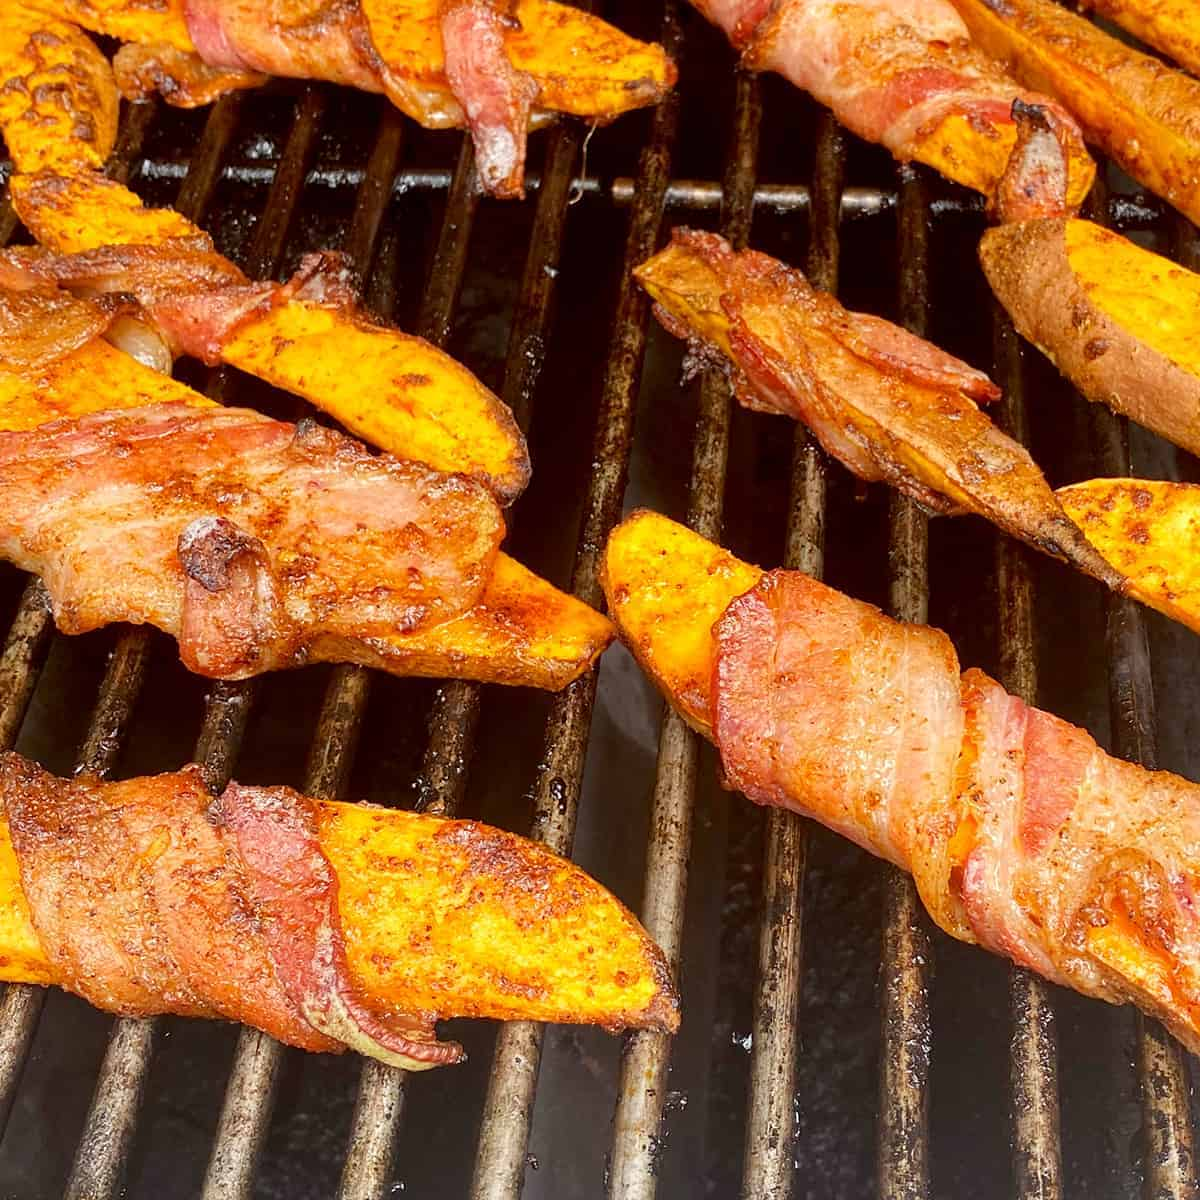 Bacon-wrapped sweet potato fries on the grill cooking.